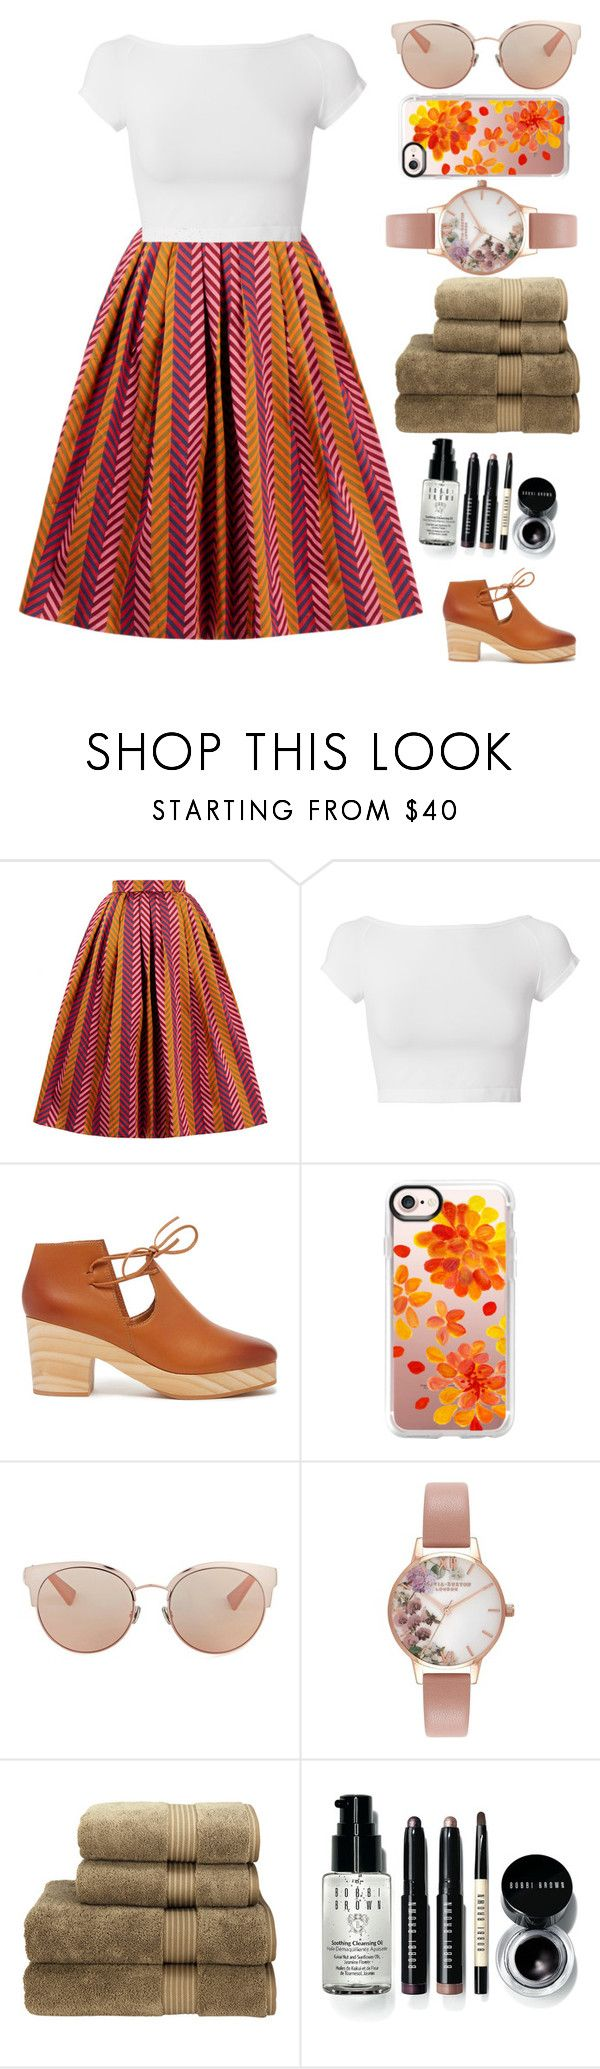 """ready for fall"" by maria143sara on Polyvore featuring House of Holland, Helmut Lang, Kelsi Dagger Brooklyn, Casetify, Christian Dior, Olivia Burton, Christy and Bobbi Brown Cosmetics"